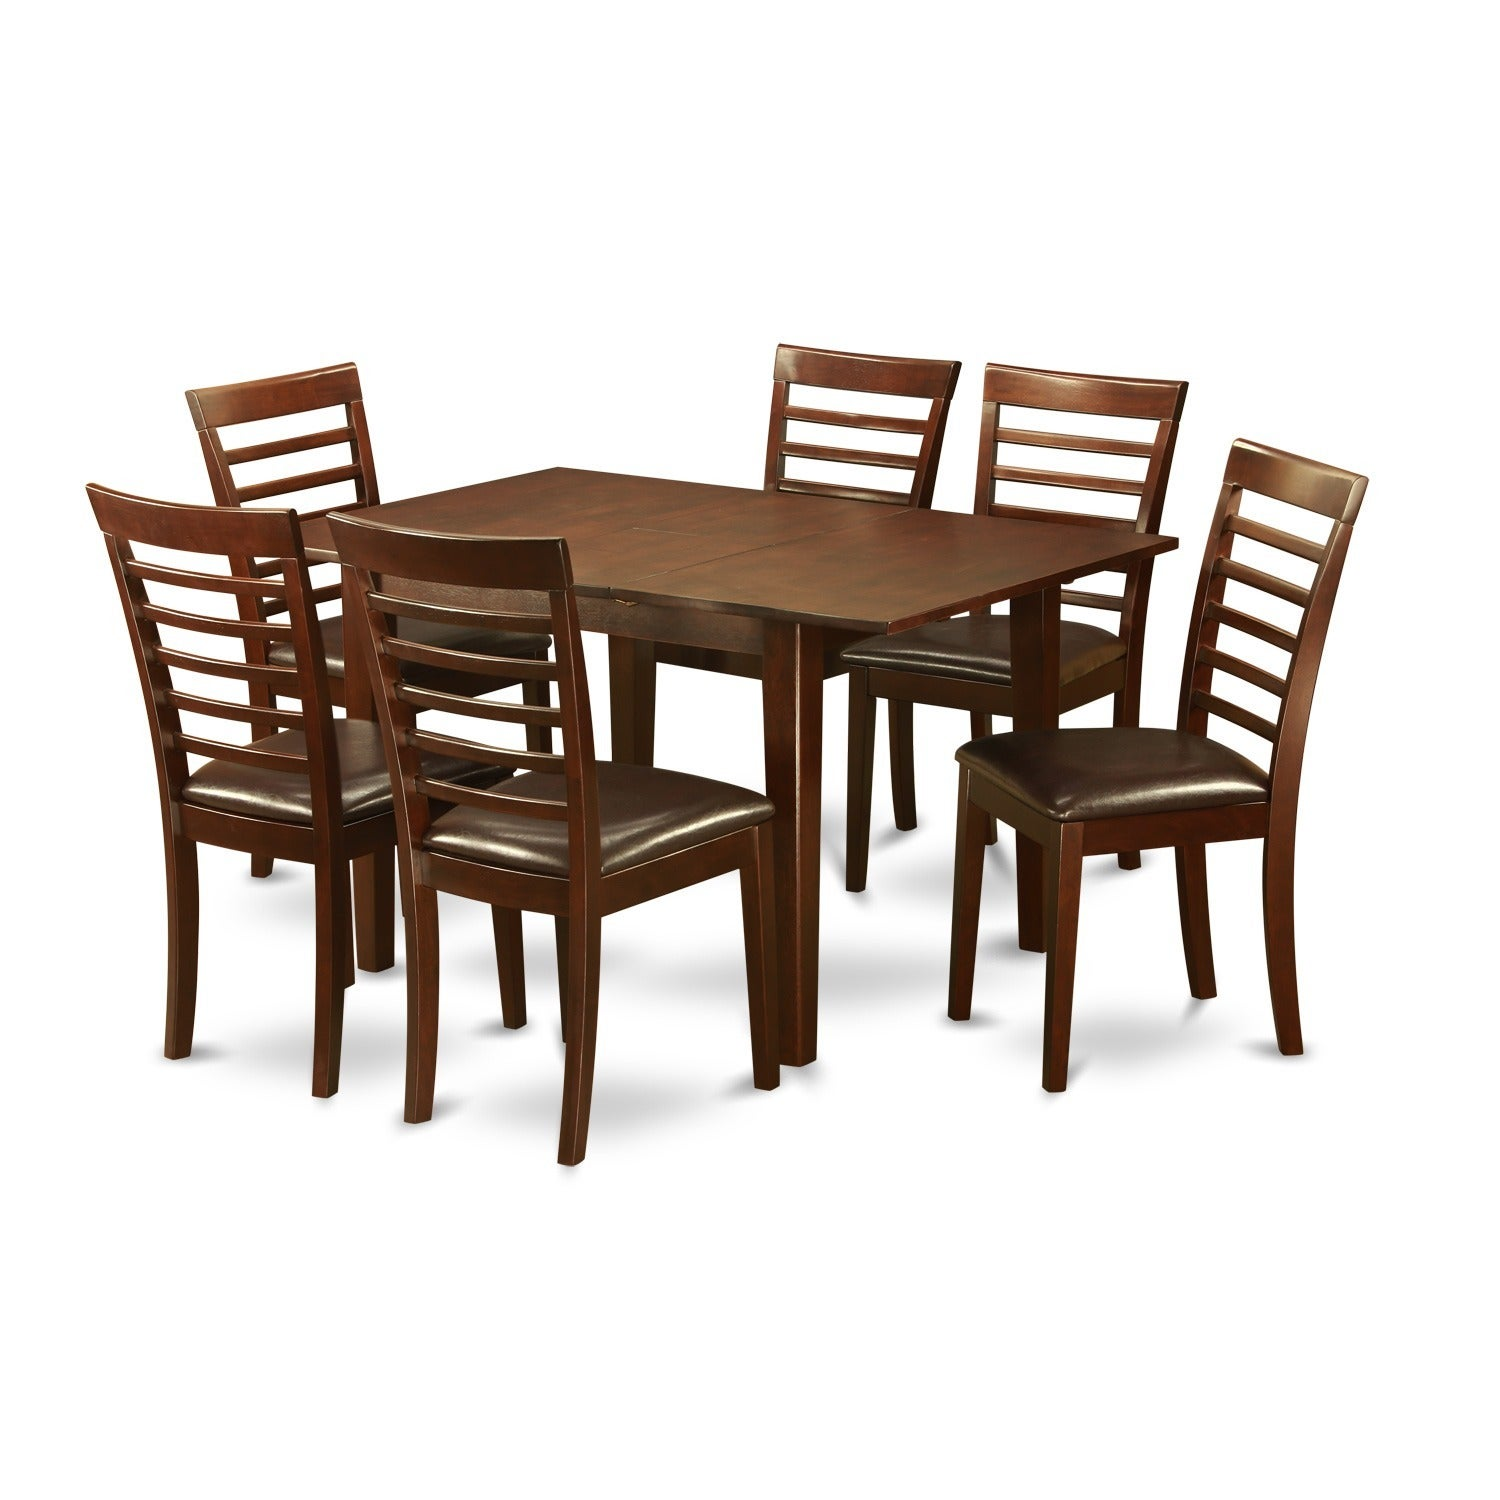 Details about mahogany finish rubberwood dining table with 6 dining chairs